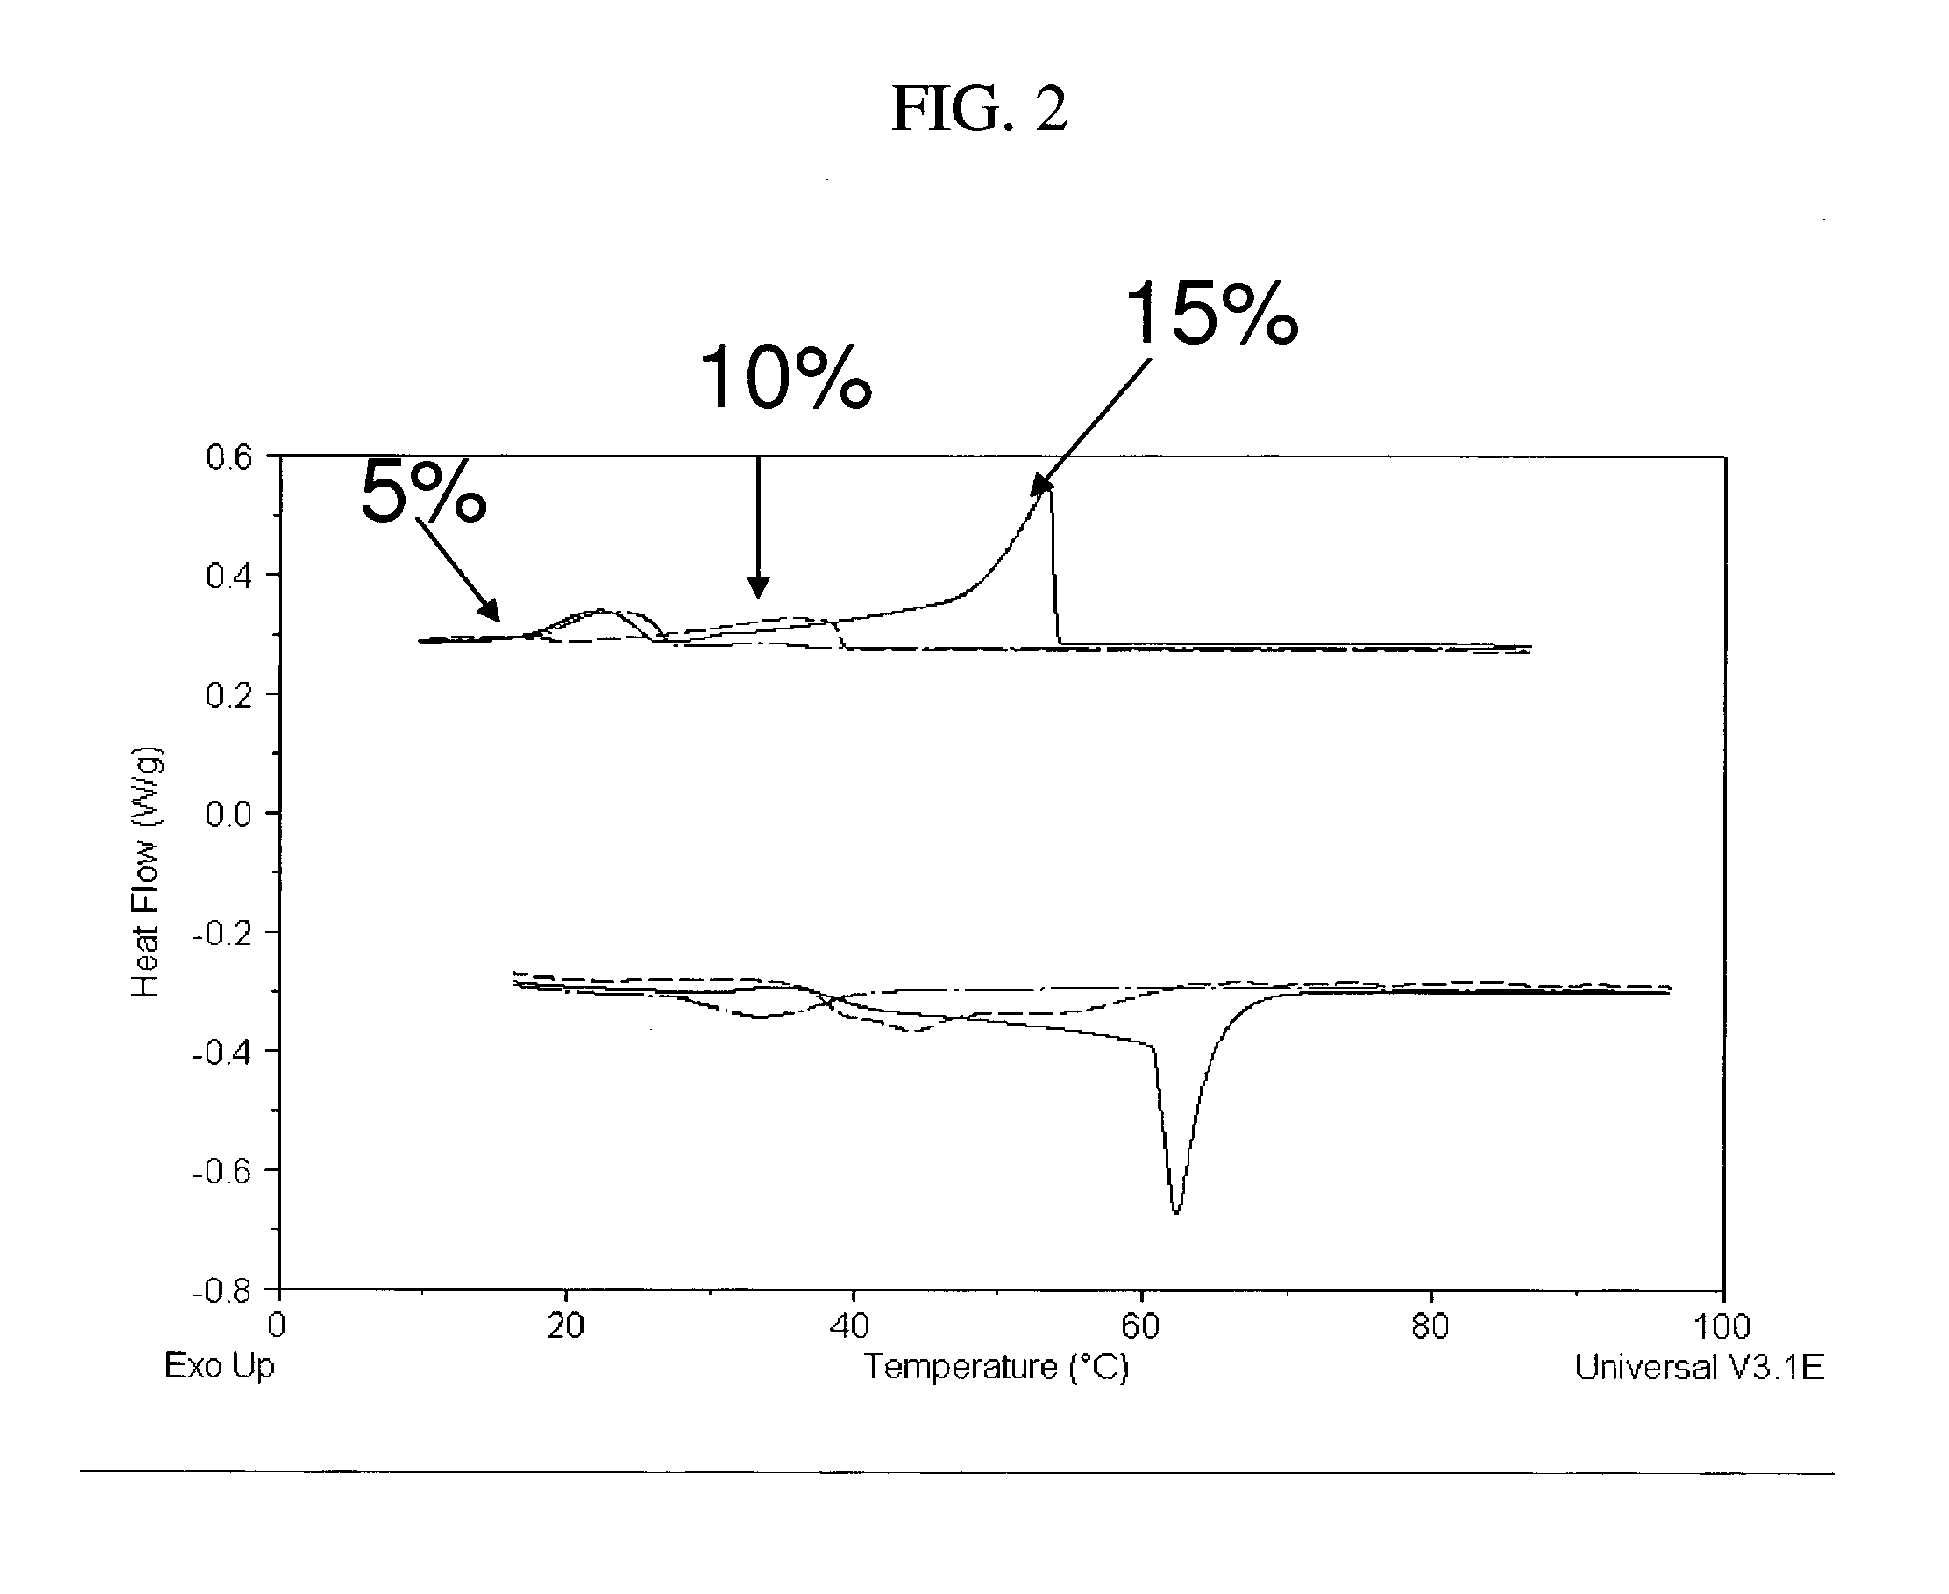 LIQUID CLEANING COMPOSITION CONTAINING LONG-CHAIN FATTY ACID